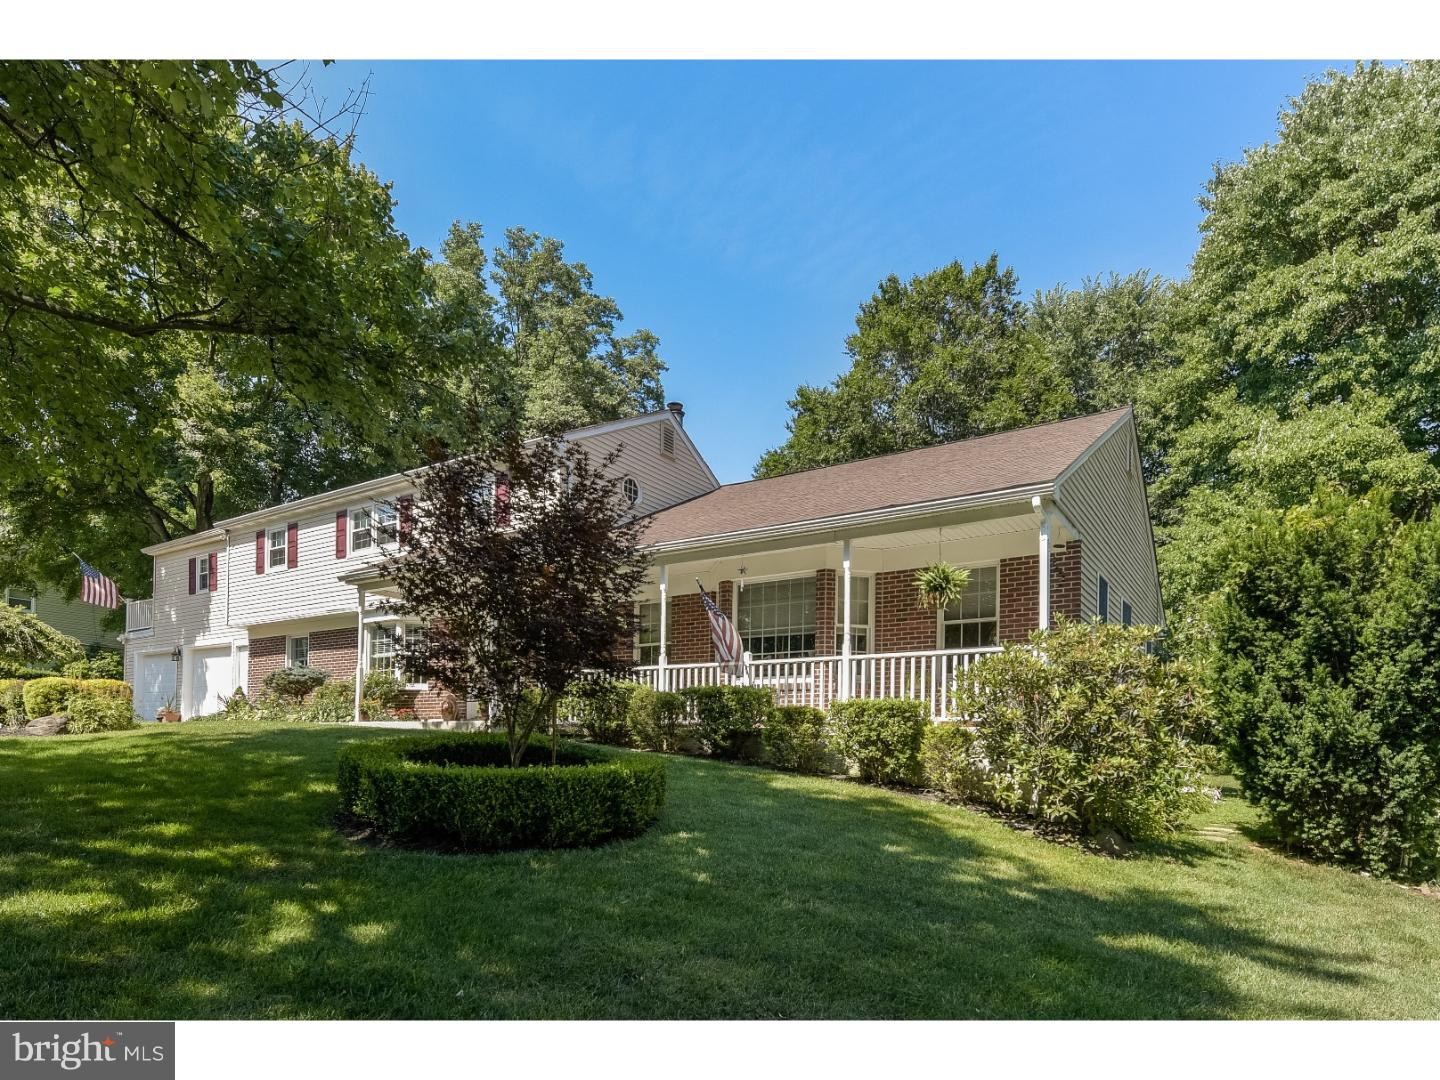 309 Glen Avenue West Chester, PA 19382